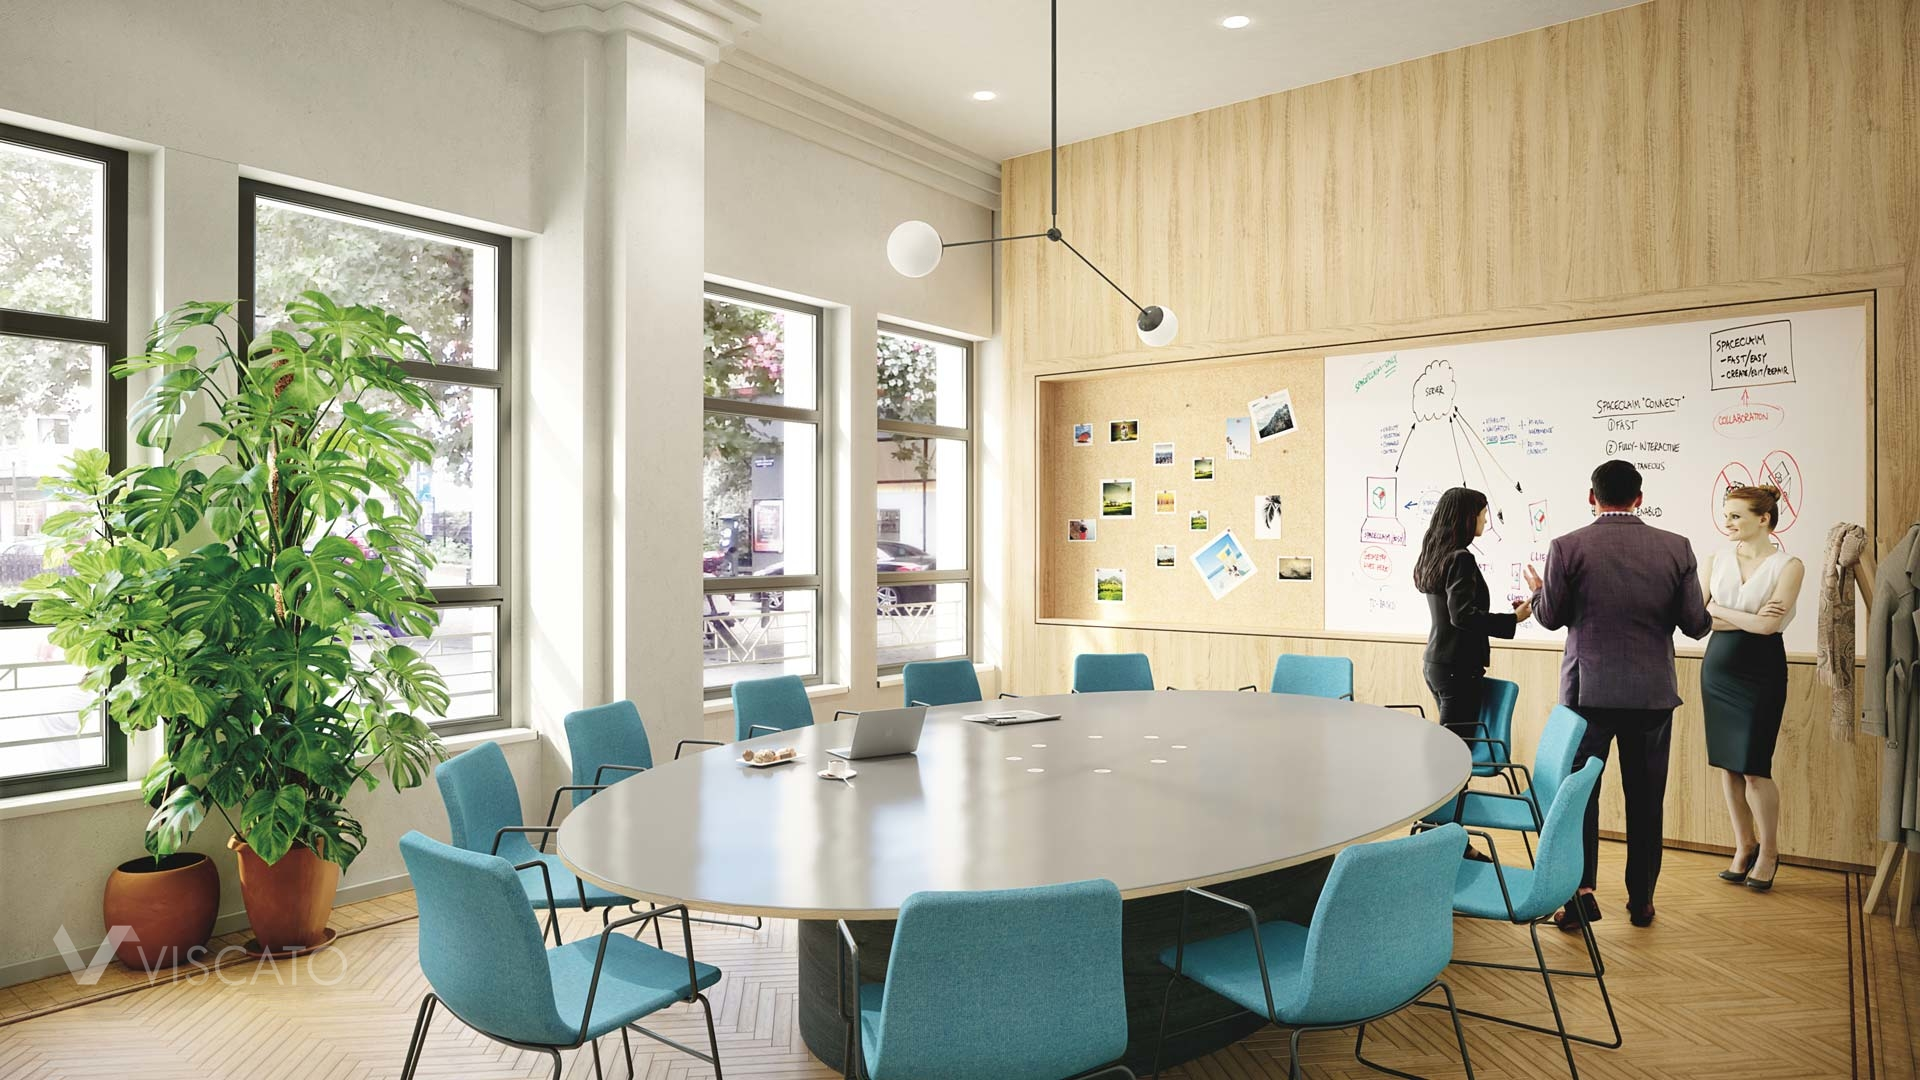 3D interior design of an office- conference room